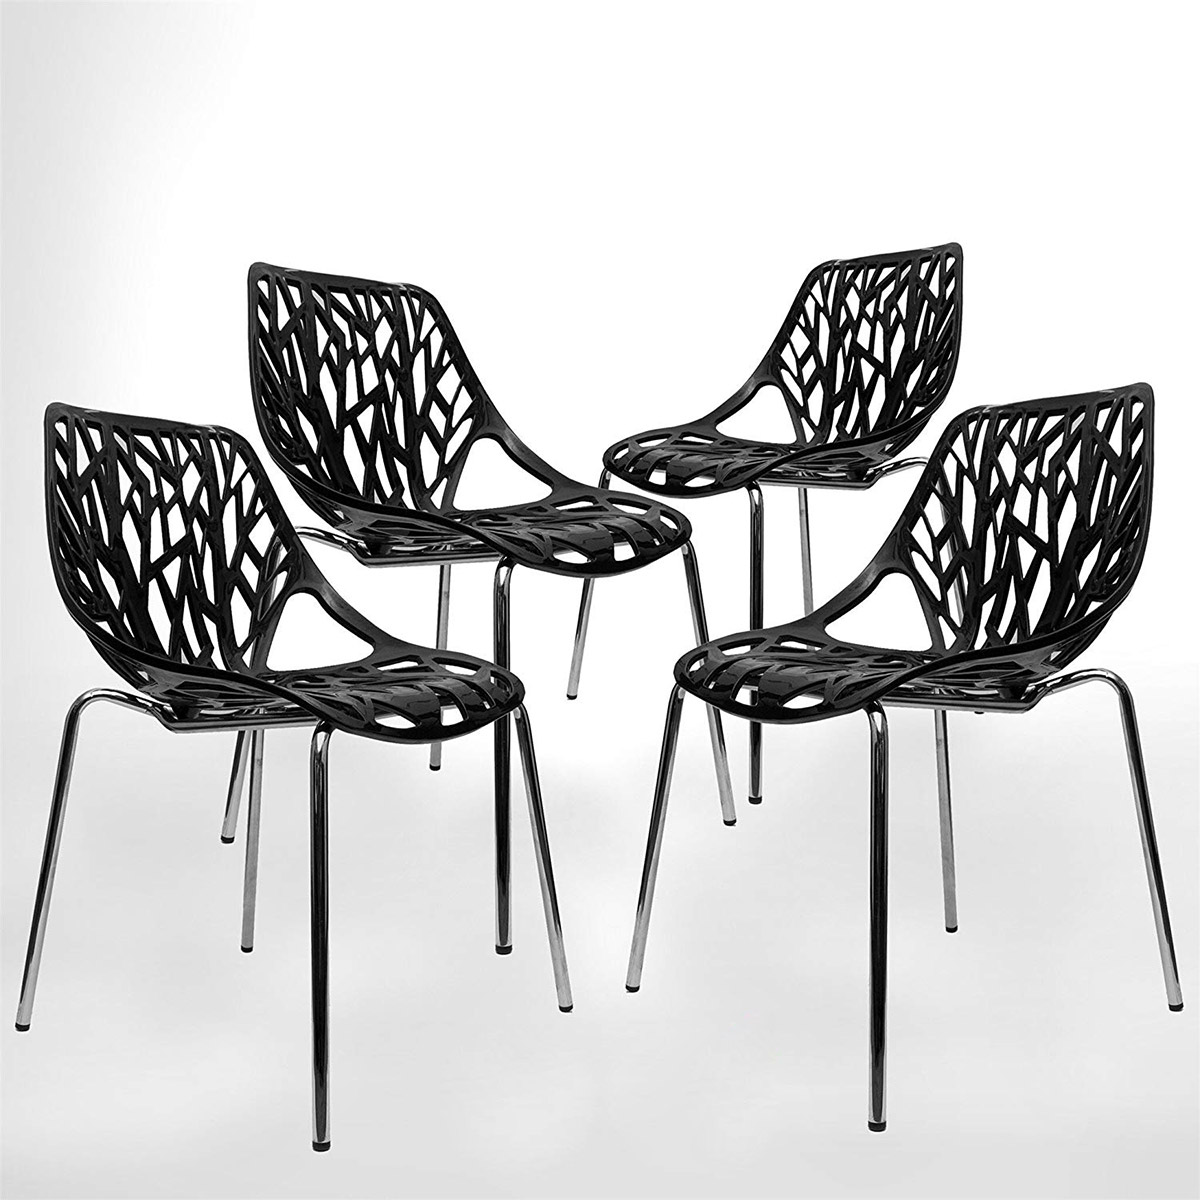 Modern-Kitchen-Chair-Set-Of-4-Black-Plastic-Metal-Legs-Silver-Stainless